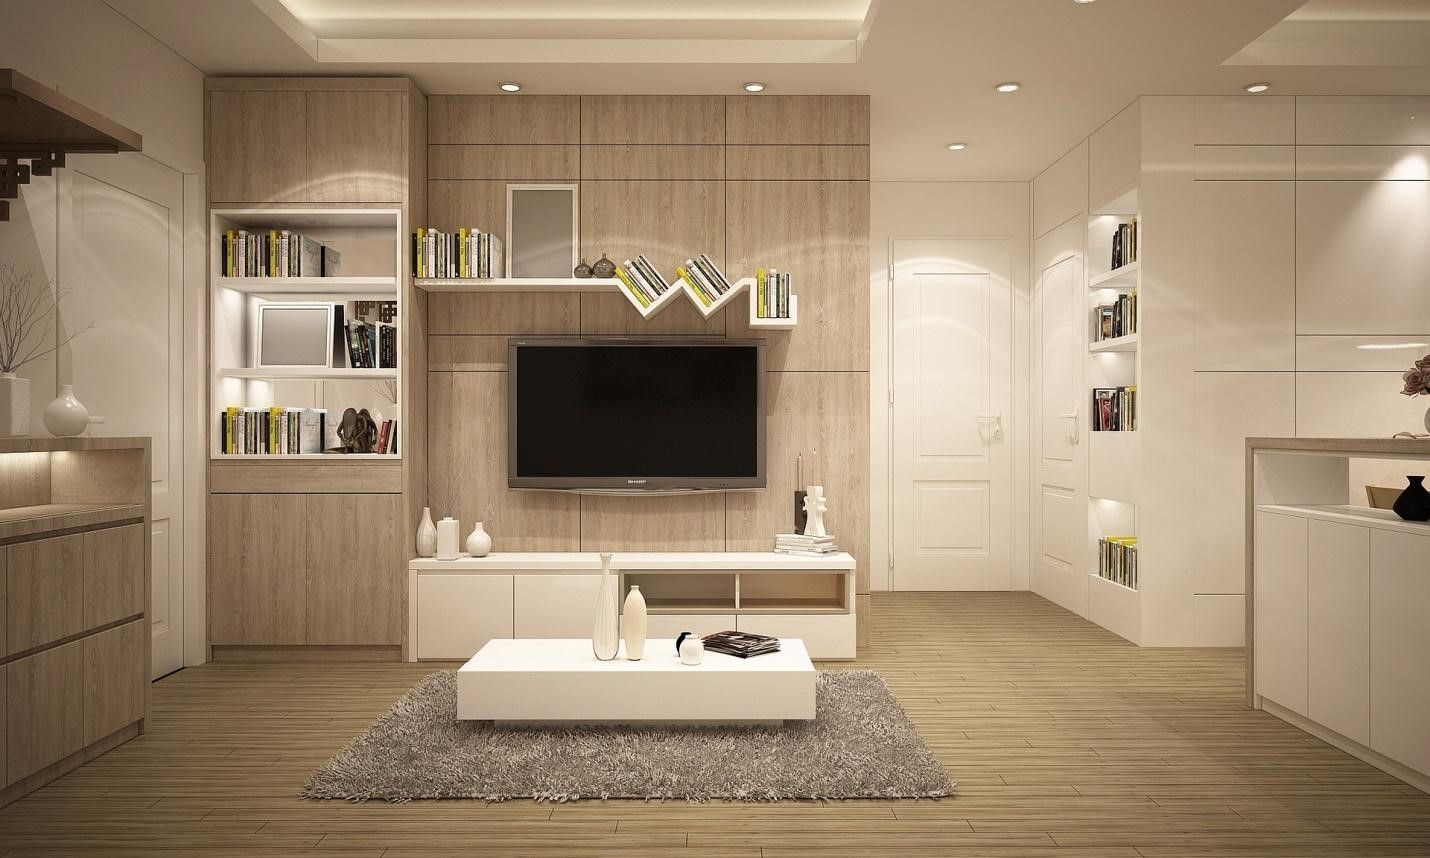 image - How to Fall in Love with Your Home- Unique Design Ideas